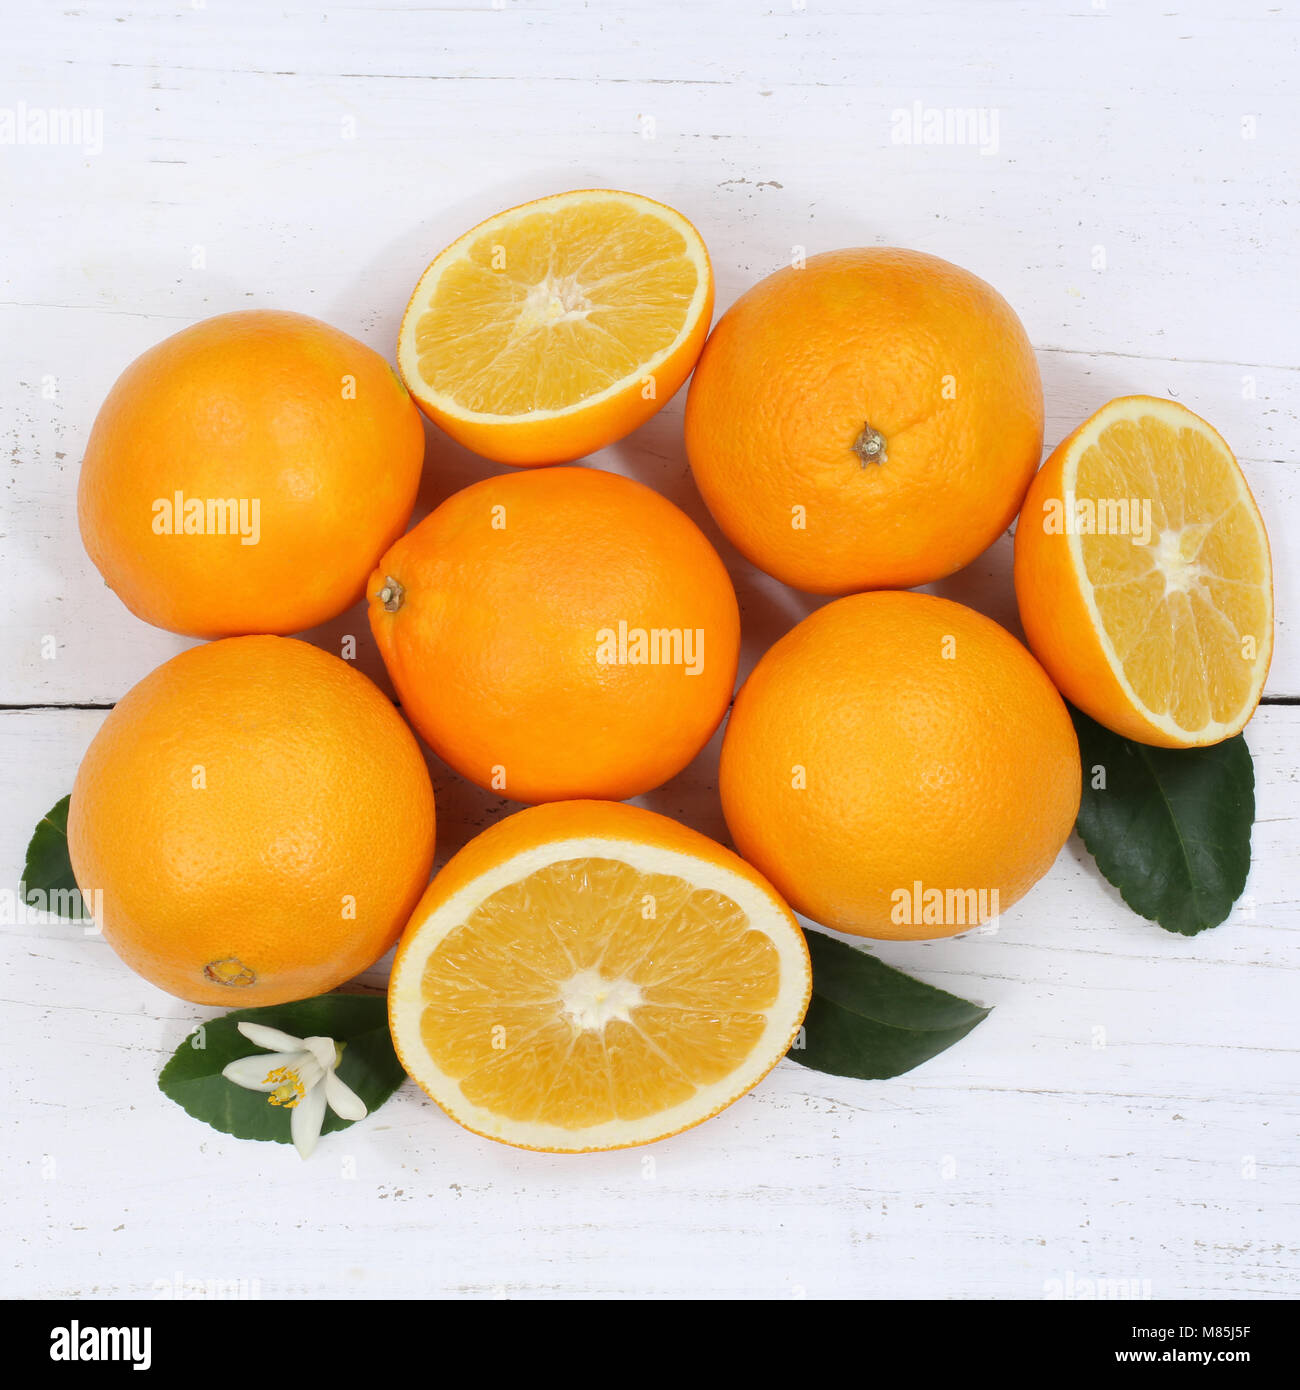 Oranges orange fruits square top view from above - Stock Image